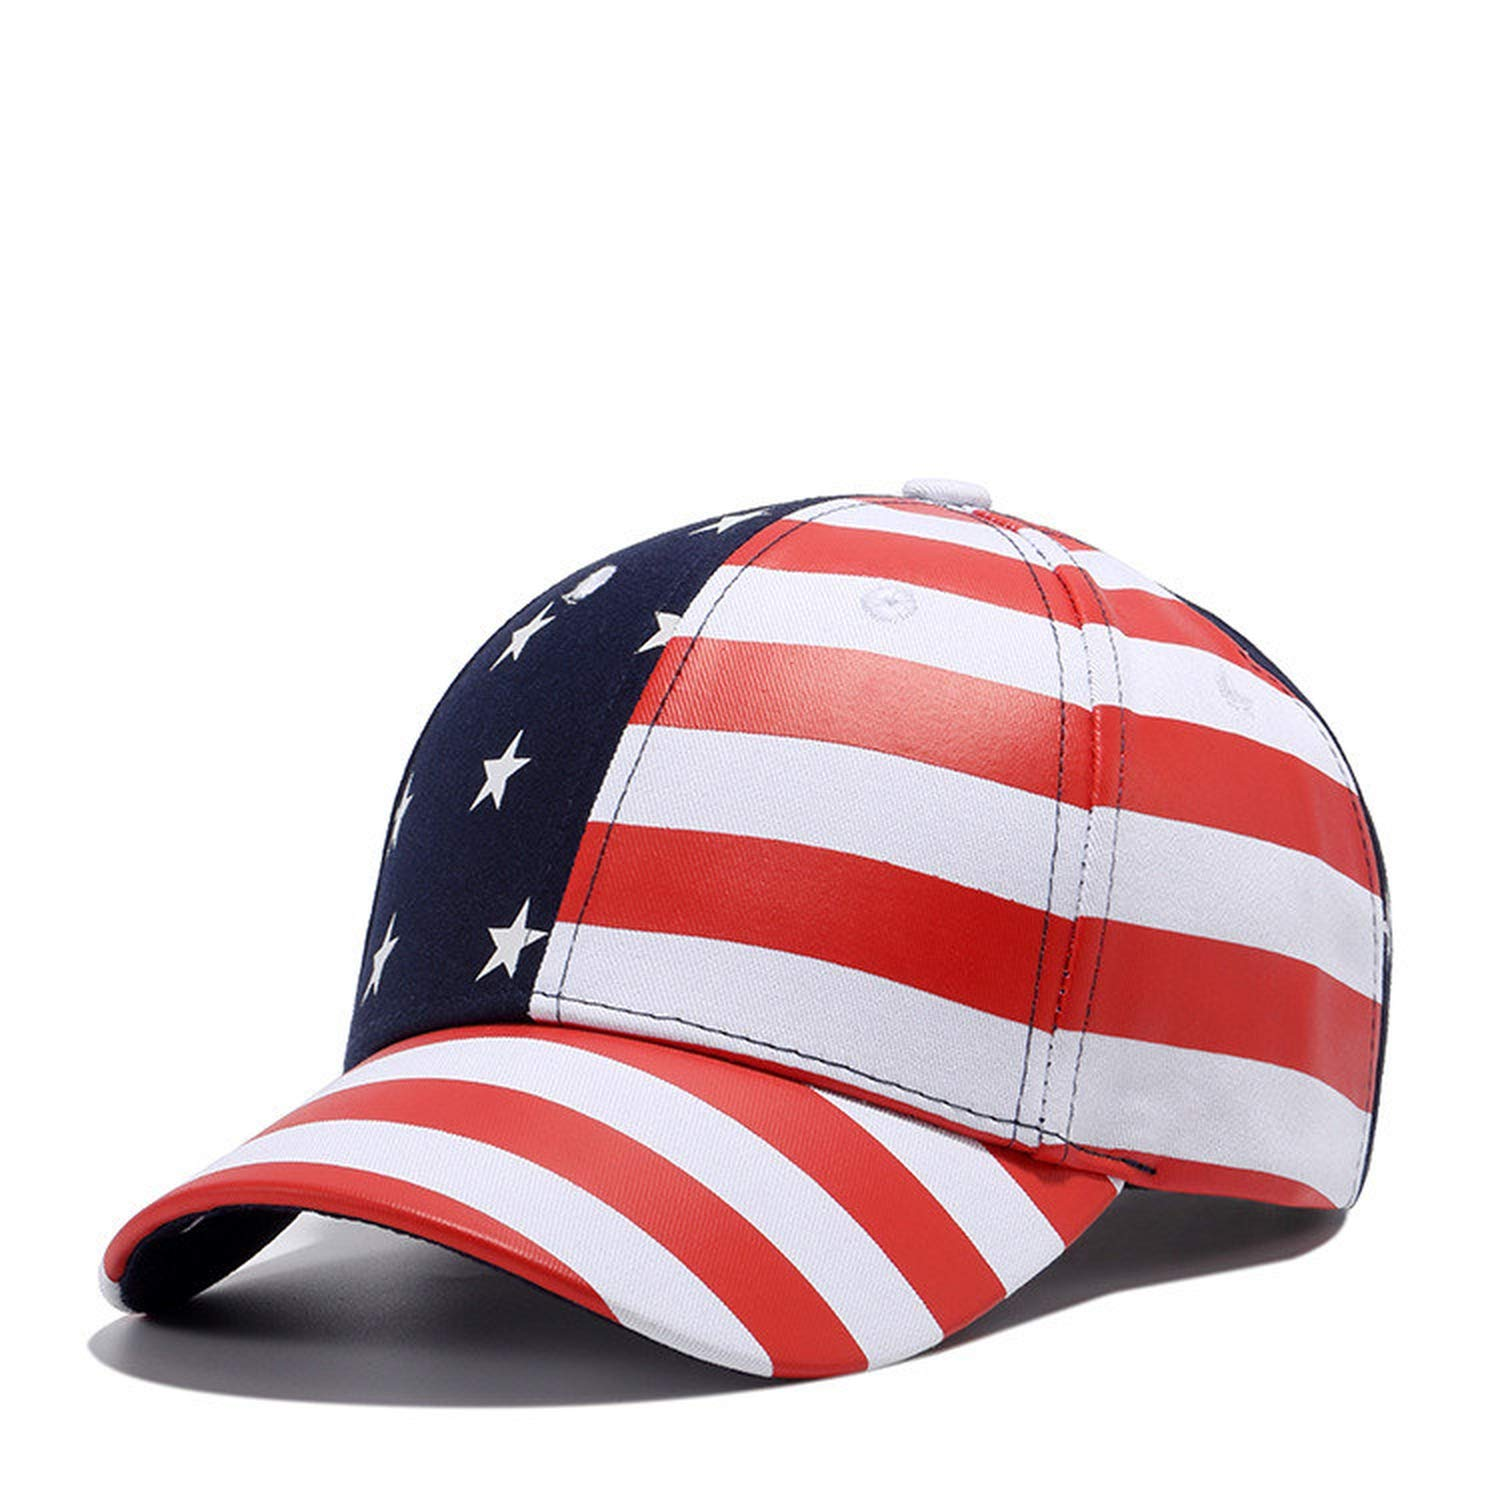 Kerr Kellogg Wuke USA Baseball Cap America Flag Hat Bone Gorras Beisbol Casual Strapback for Men Women Caps Black at Amazon Mens Clothing store: